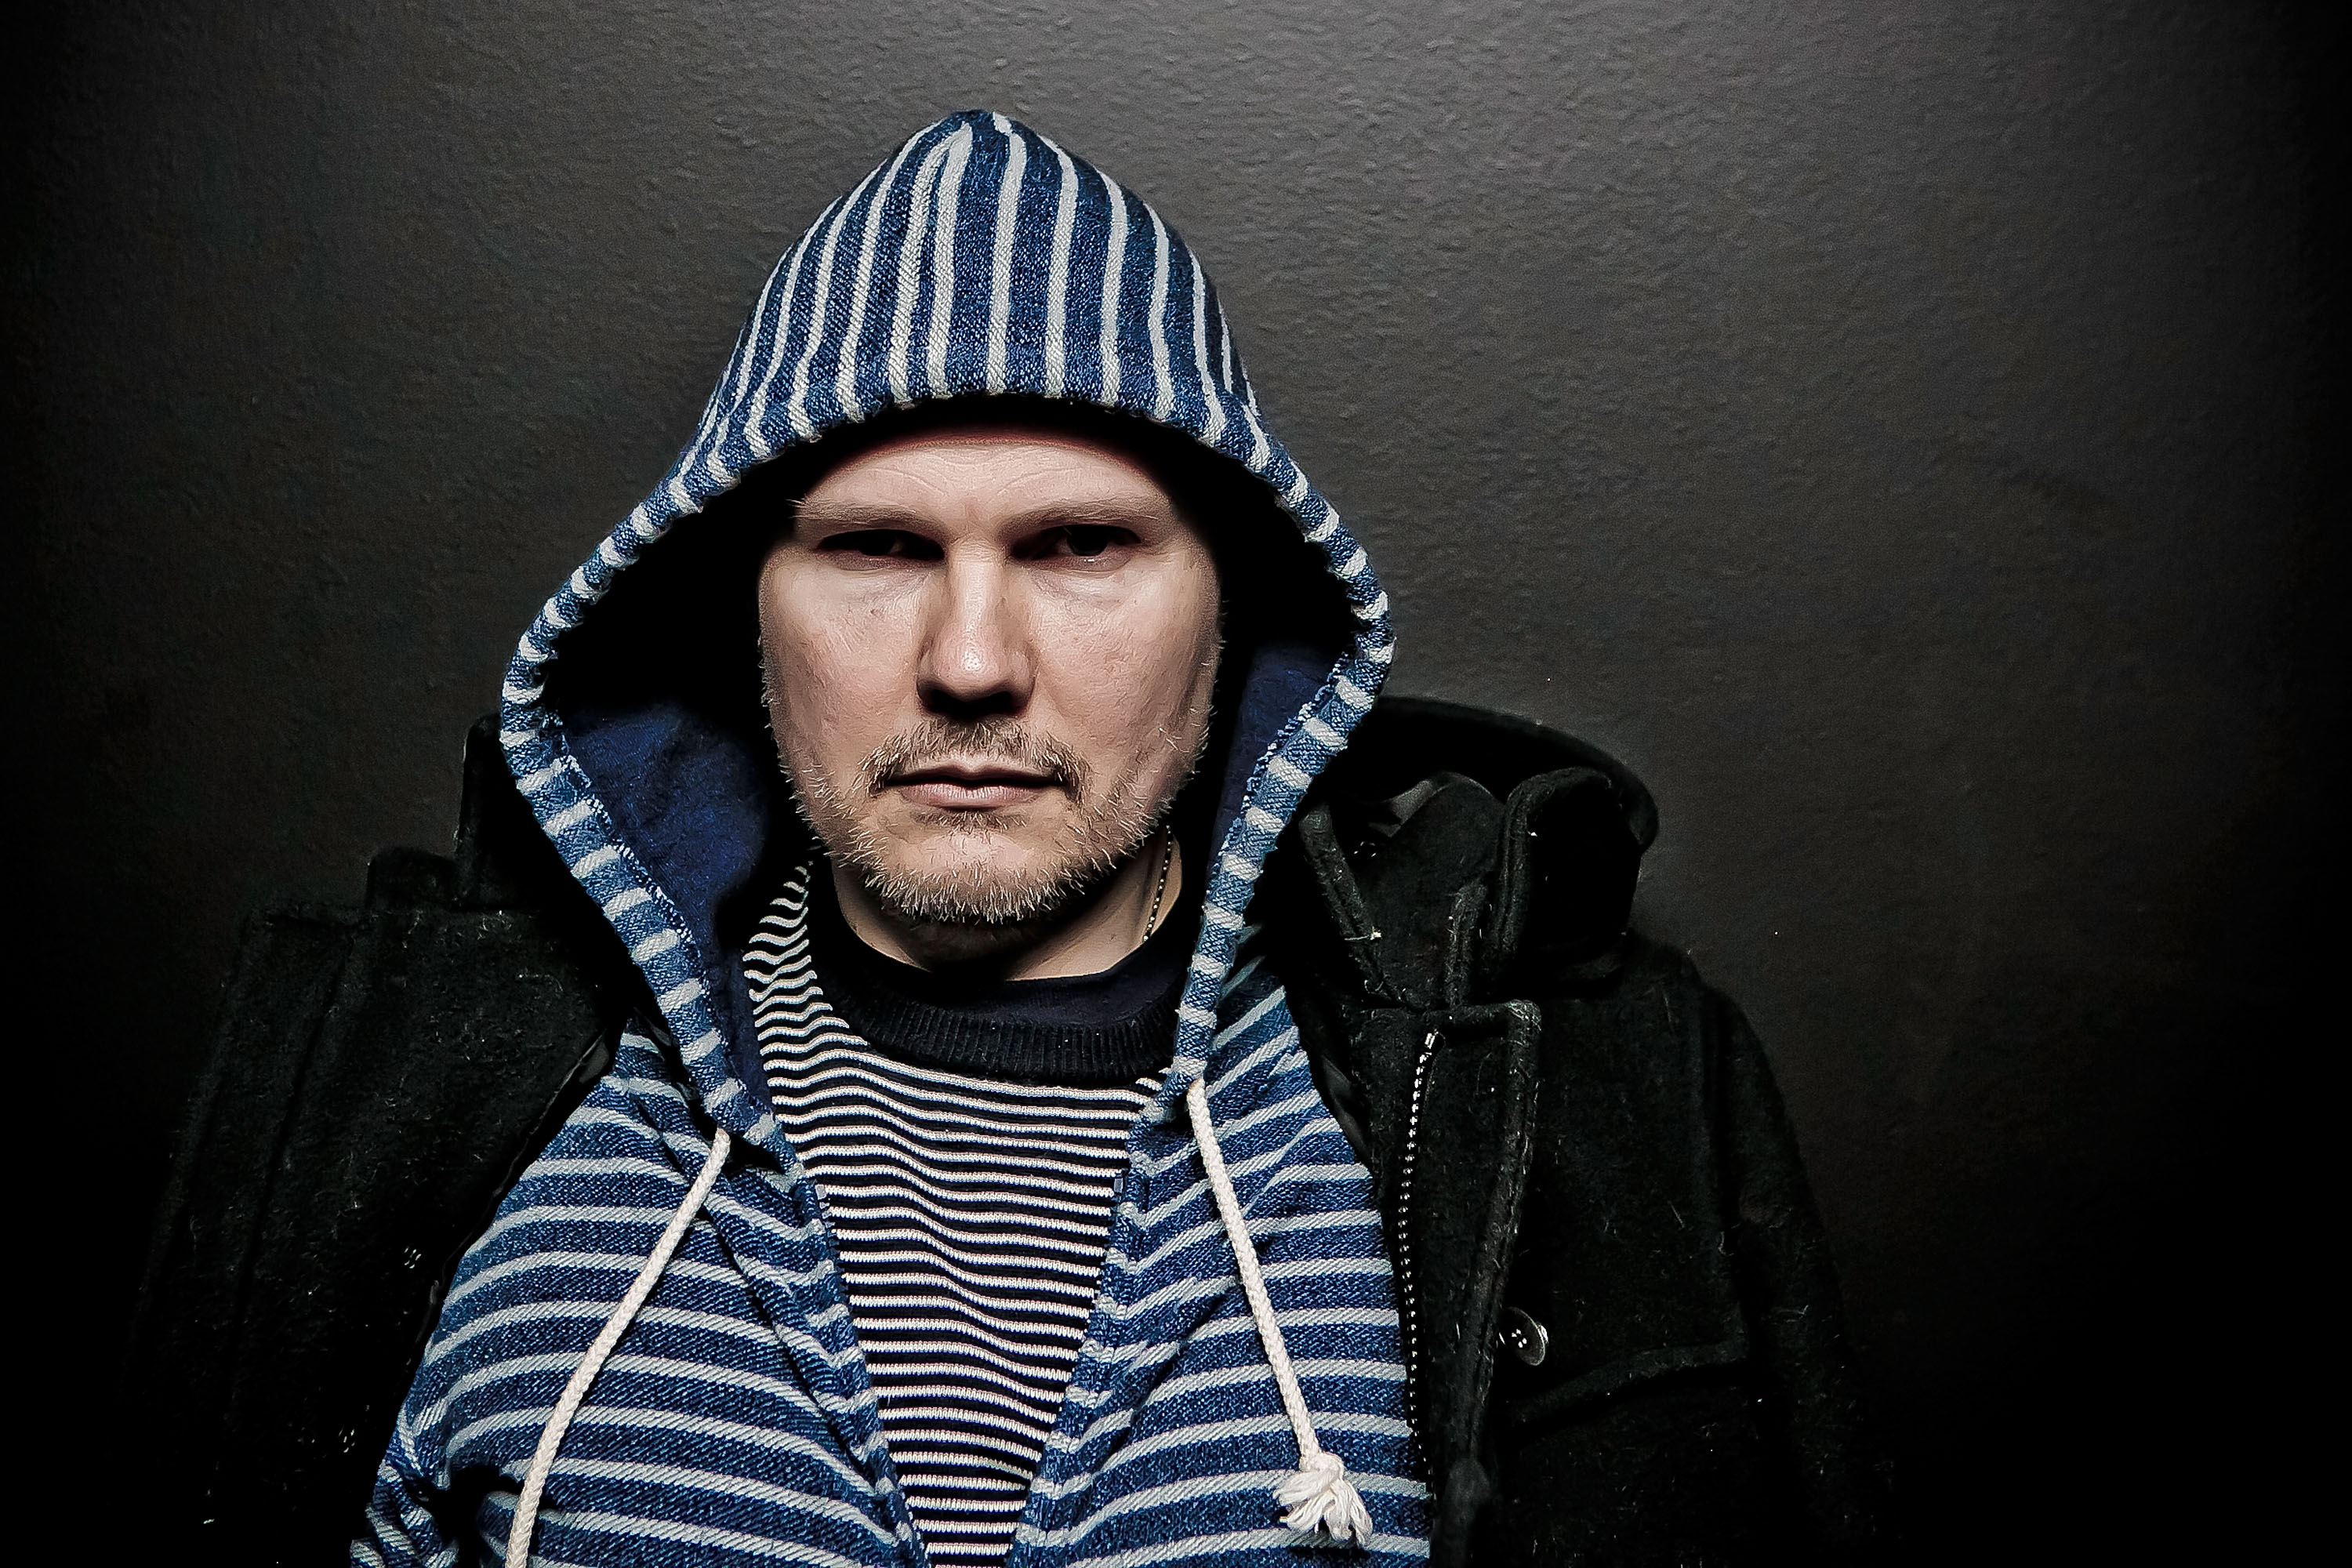 INGLEWOOD, CA - DECEMBER 14:  (EDITOR'S NOTE: This image was processed using digital filters) Billy Corgan of Smashing Pumpki